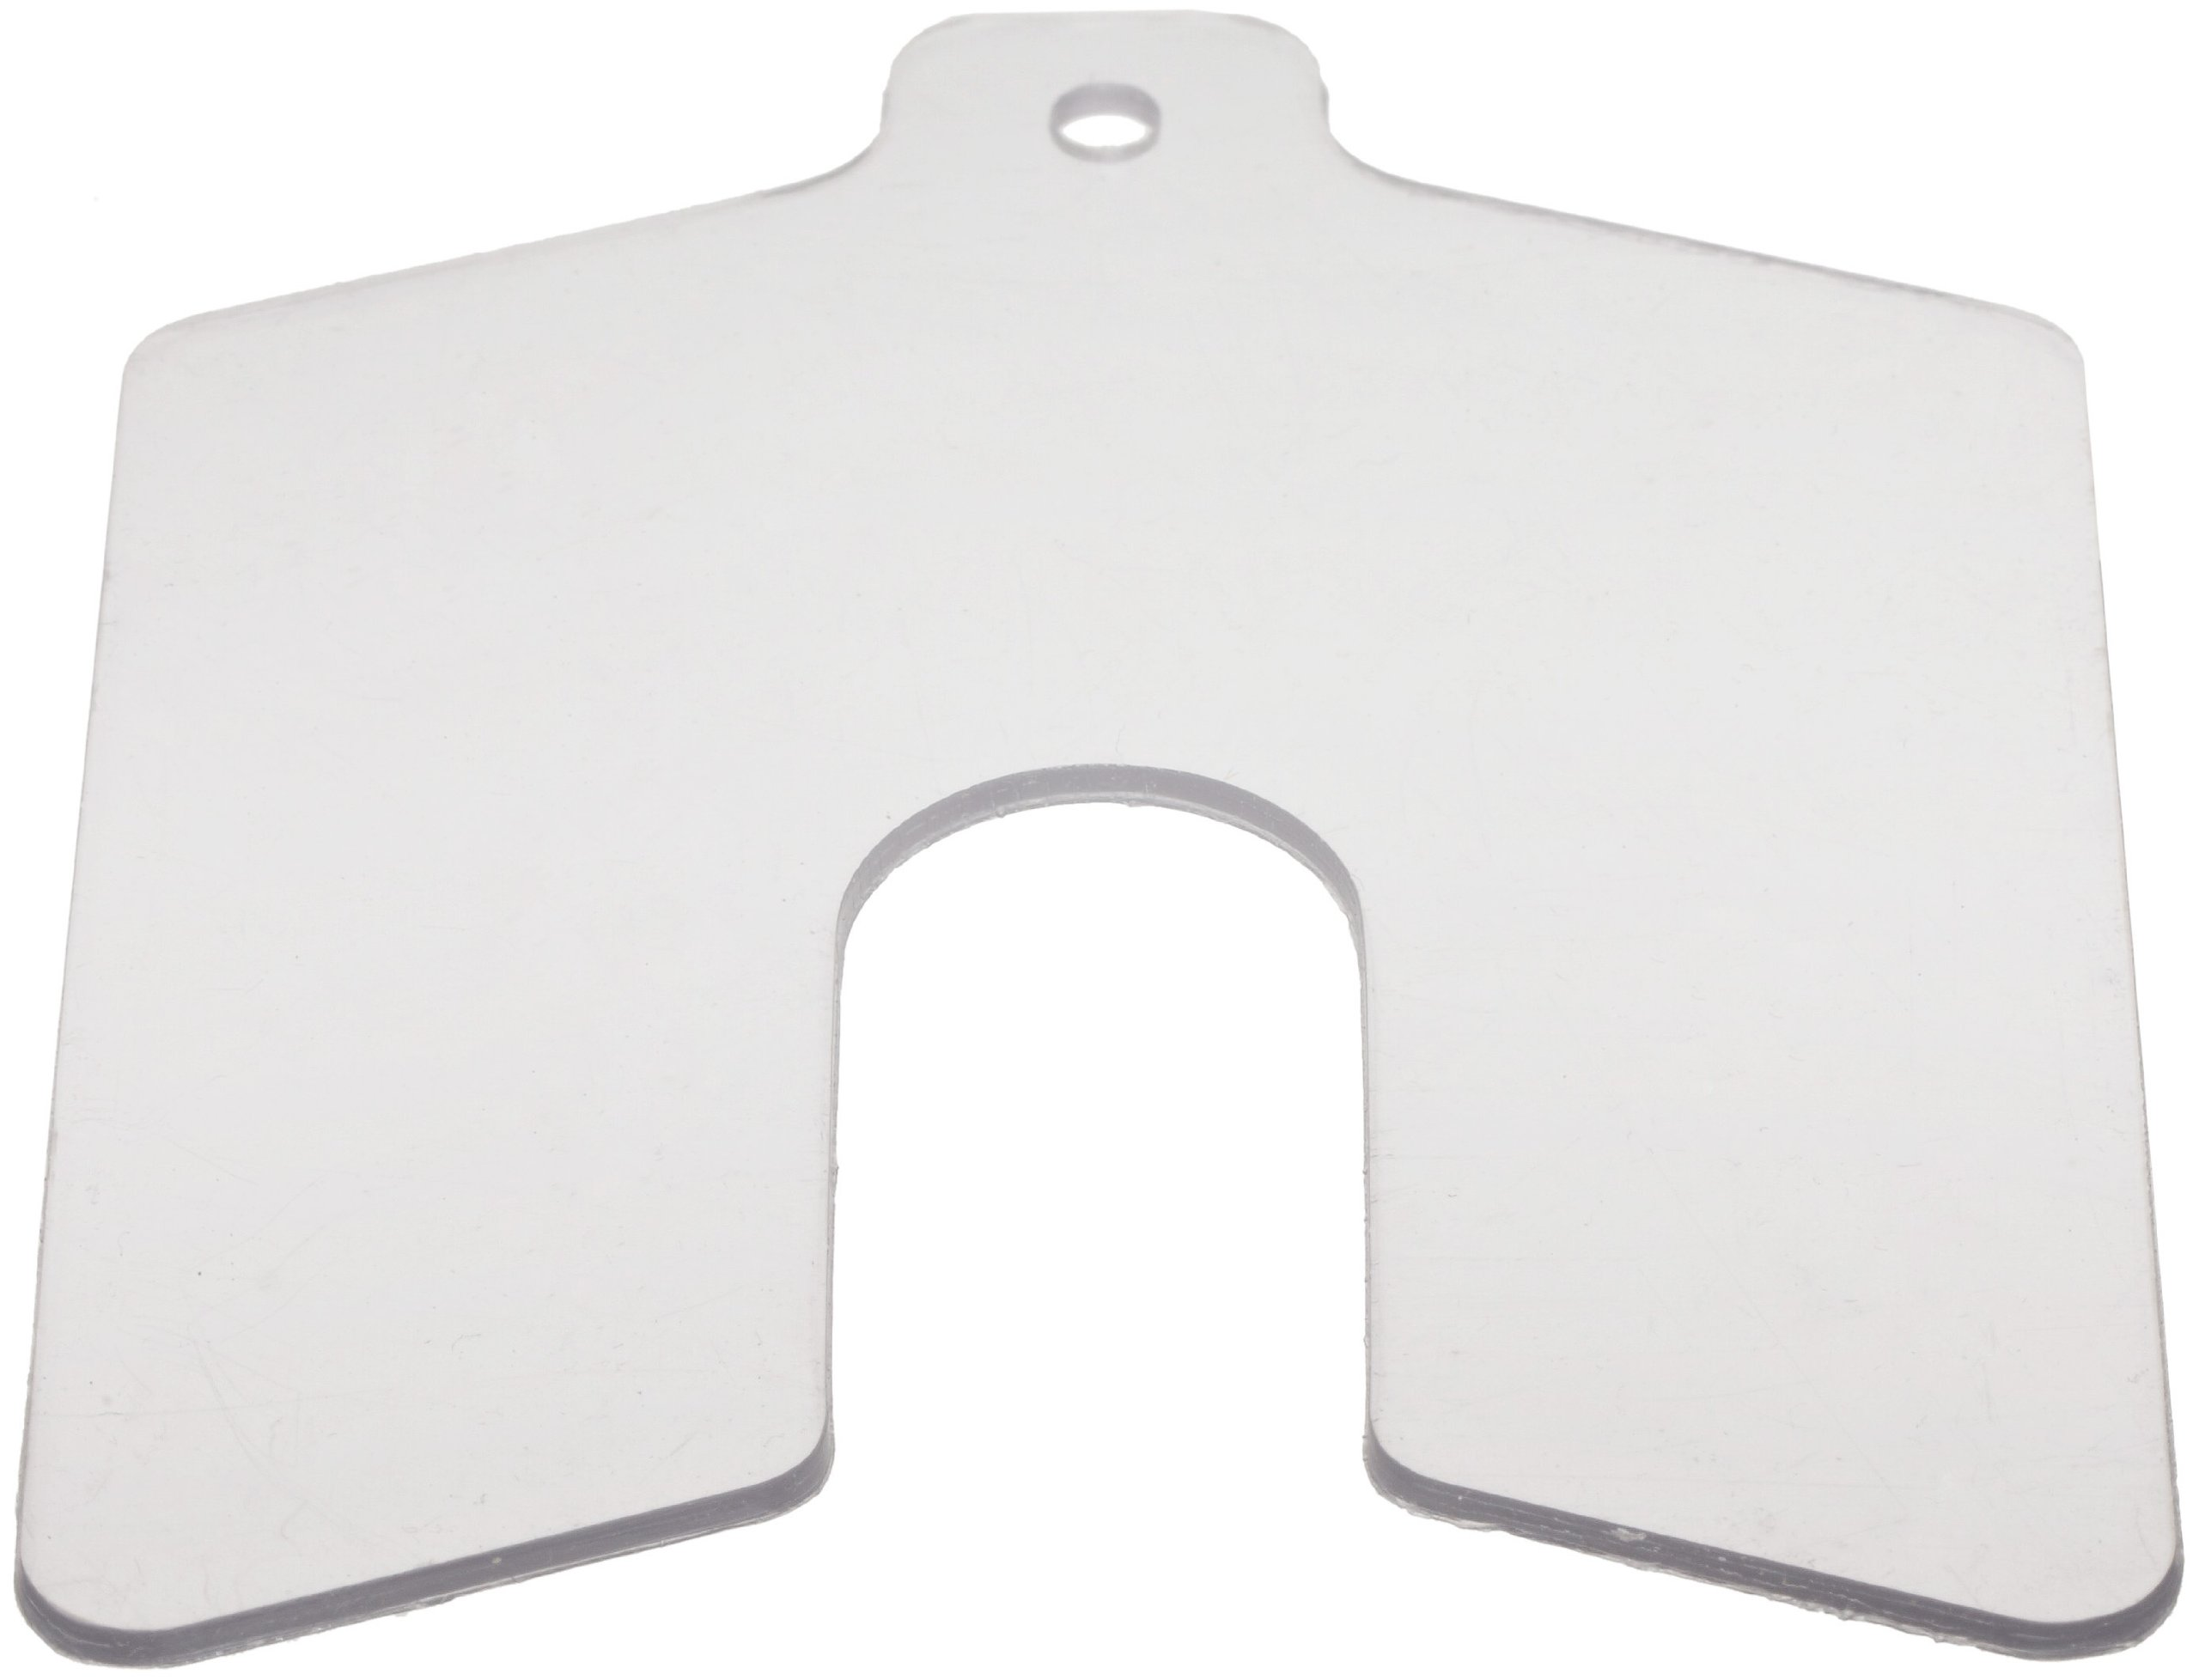 PVC (Polyvinyl Chloride) Slotted Shim,  Clear, 0.060'' Thickness, 3'' Width, 3'' Length, 0.75'' Slot Width (Pack of 20) by Small Parts